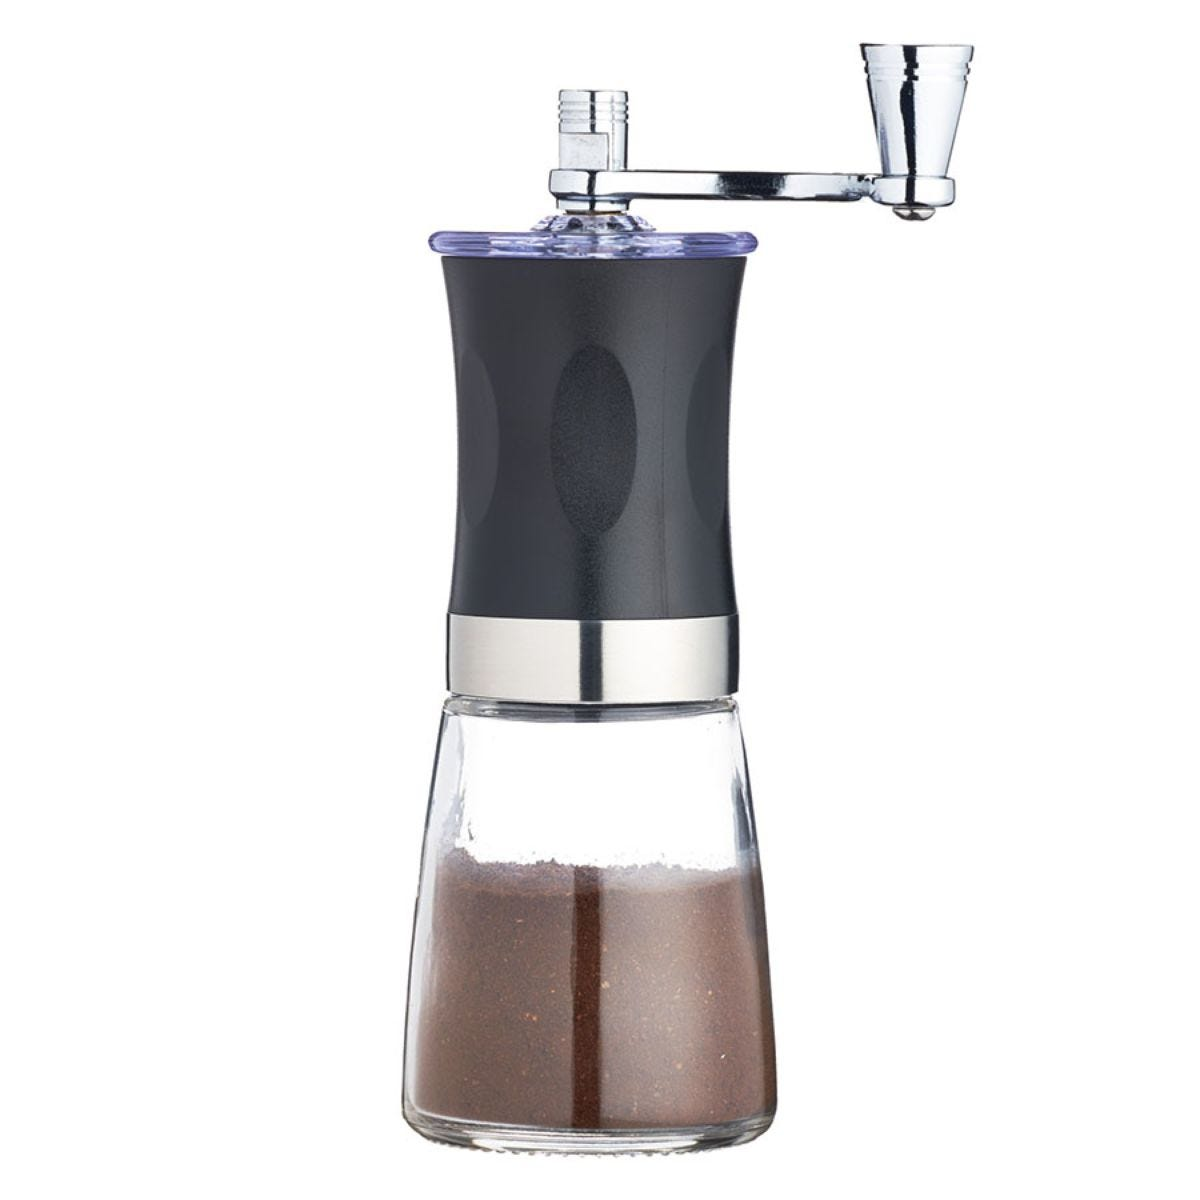 KitchenCraft Le'Xpress Coffee Grinder